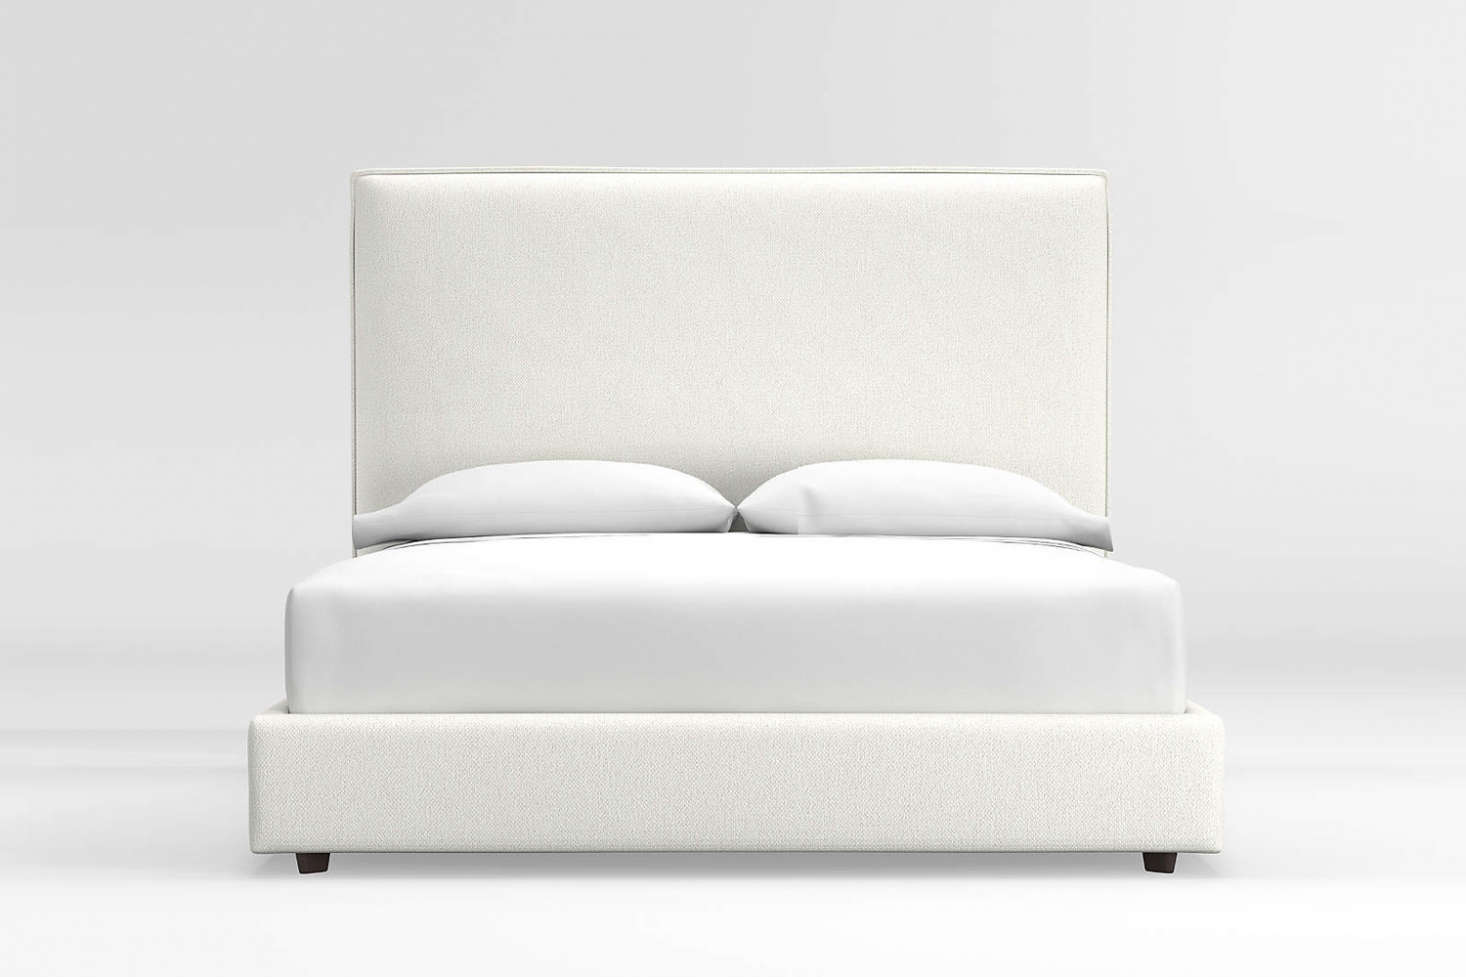 The Lotus Tall Bed is $